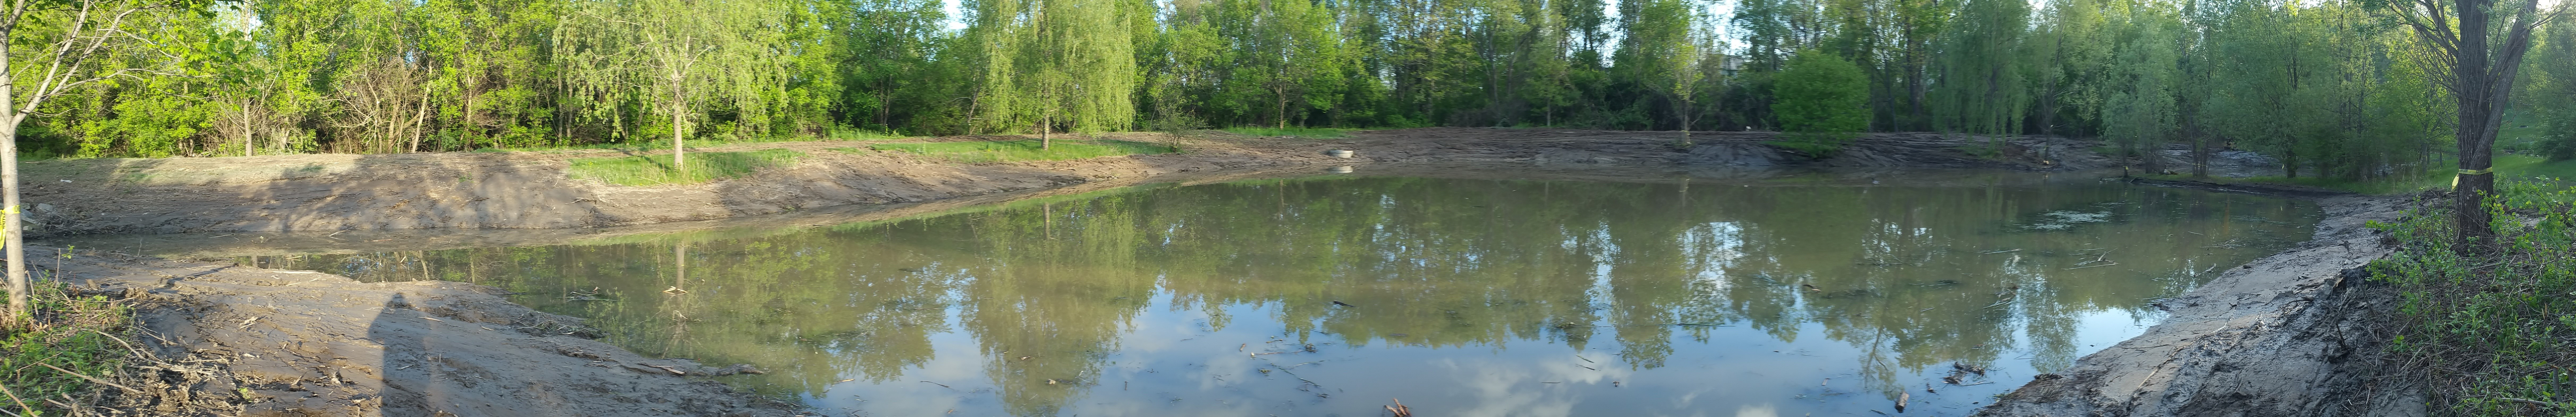 Ann Arbor, Michigan retention basin pond fix (32)-2.jpg